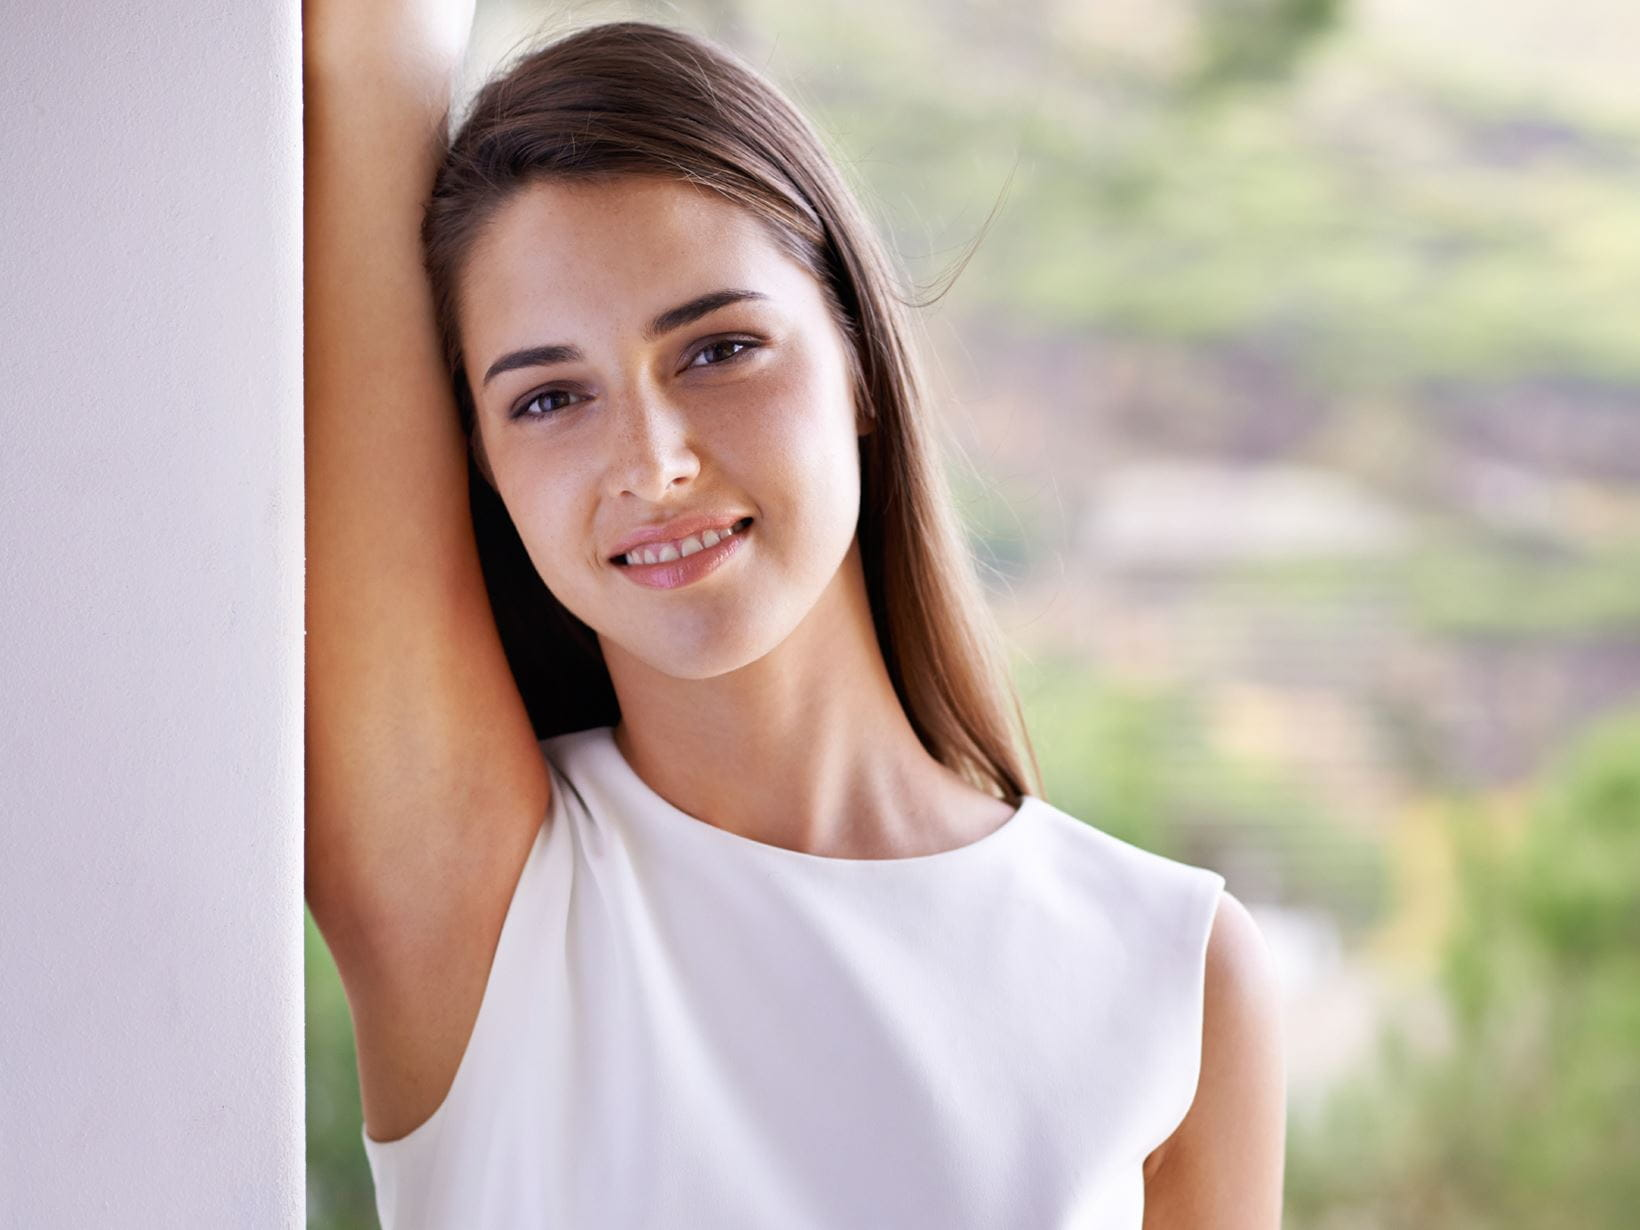 woman smiling showing her armpit